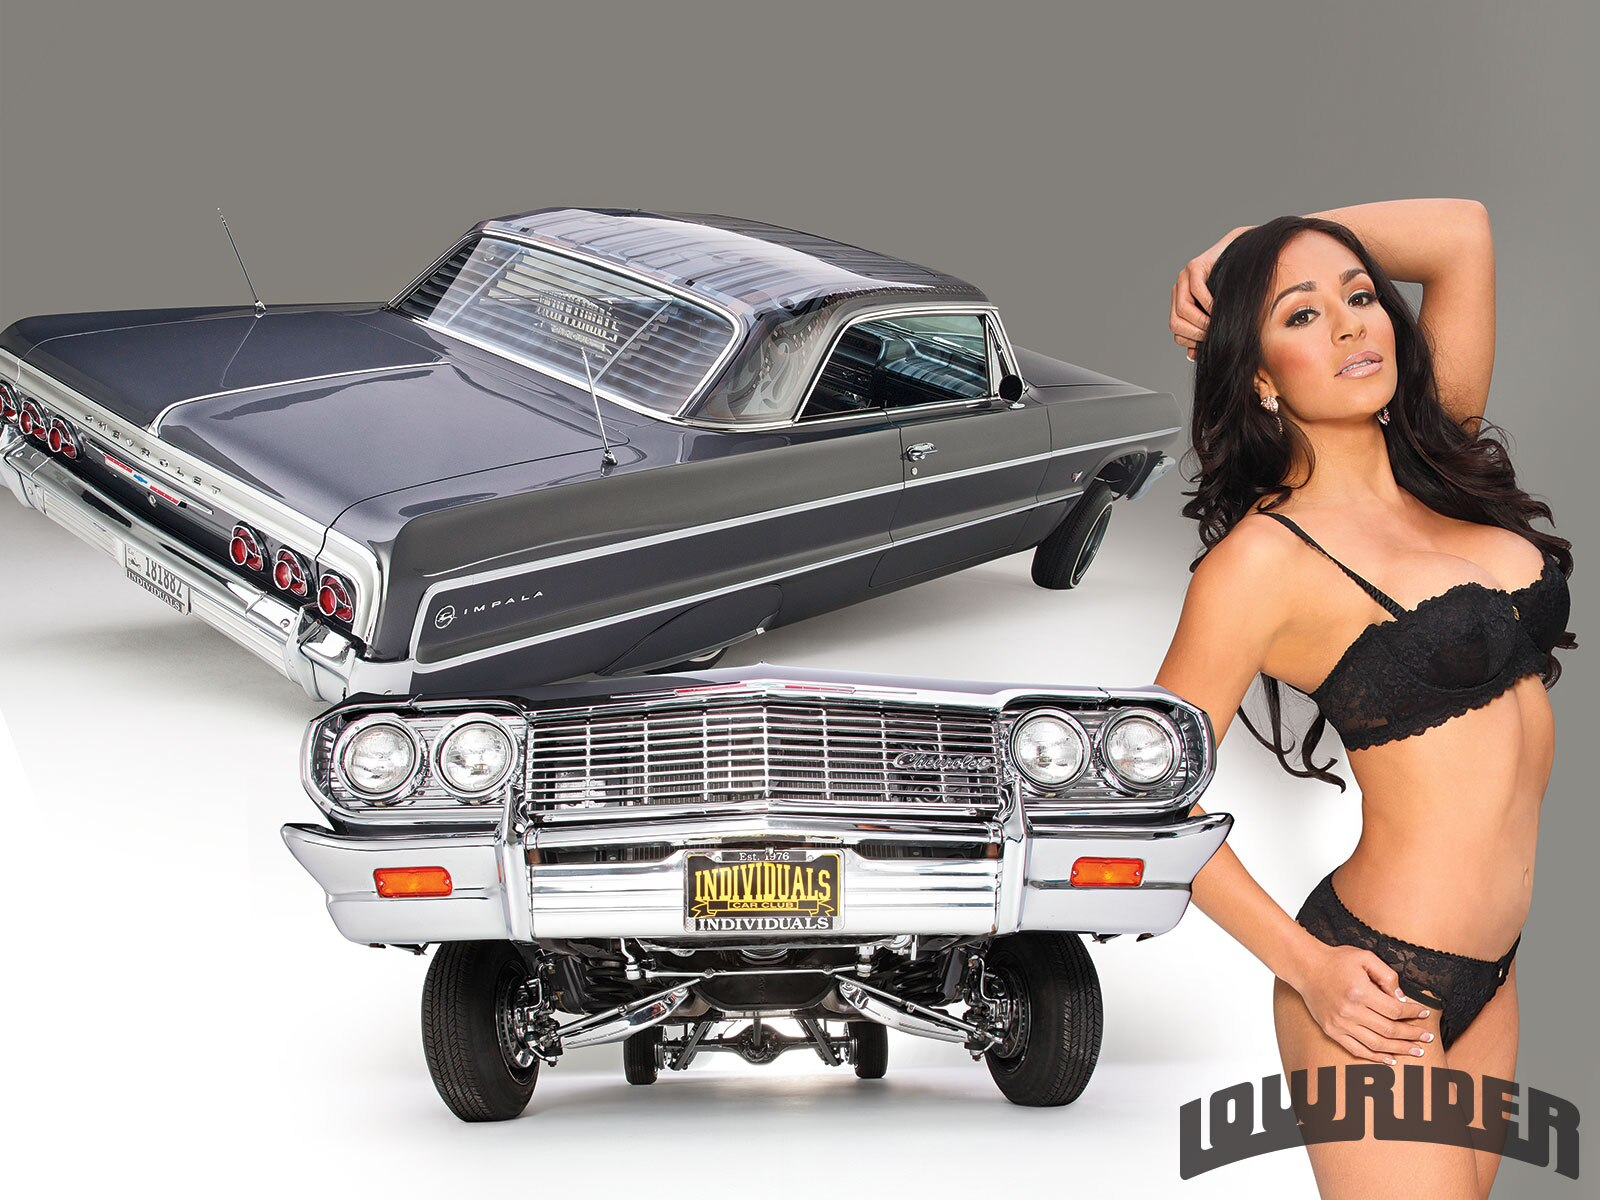 1964-chevrolet-impala-model-martha-aguiar